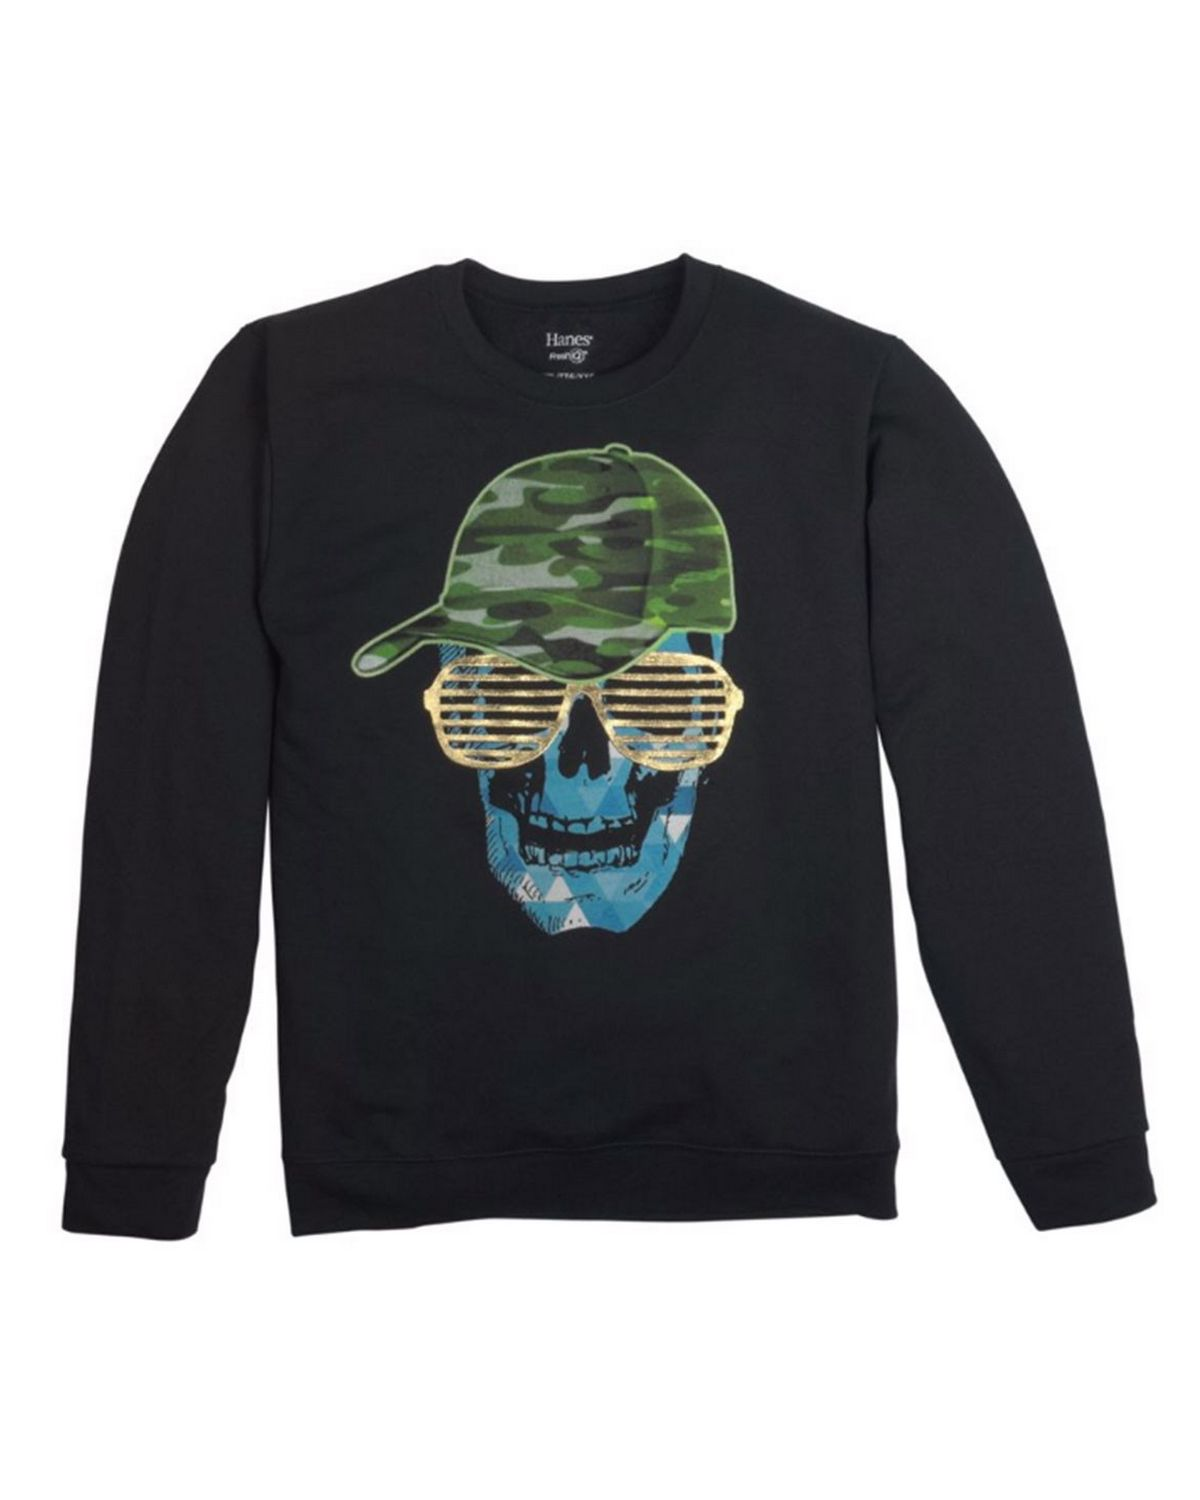 Hanes D199 Boys FreshIQ Graphic Sweatshirt - Skull Shades/Black - S D199